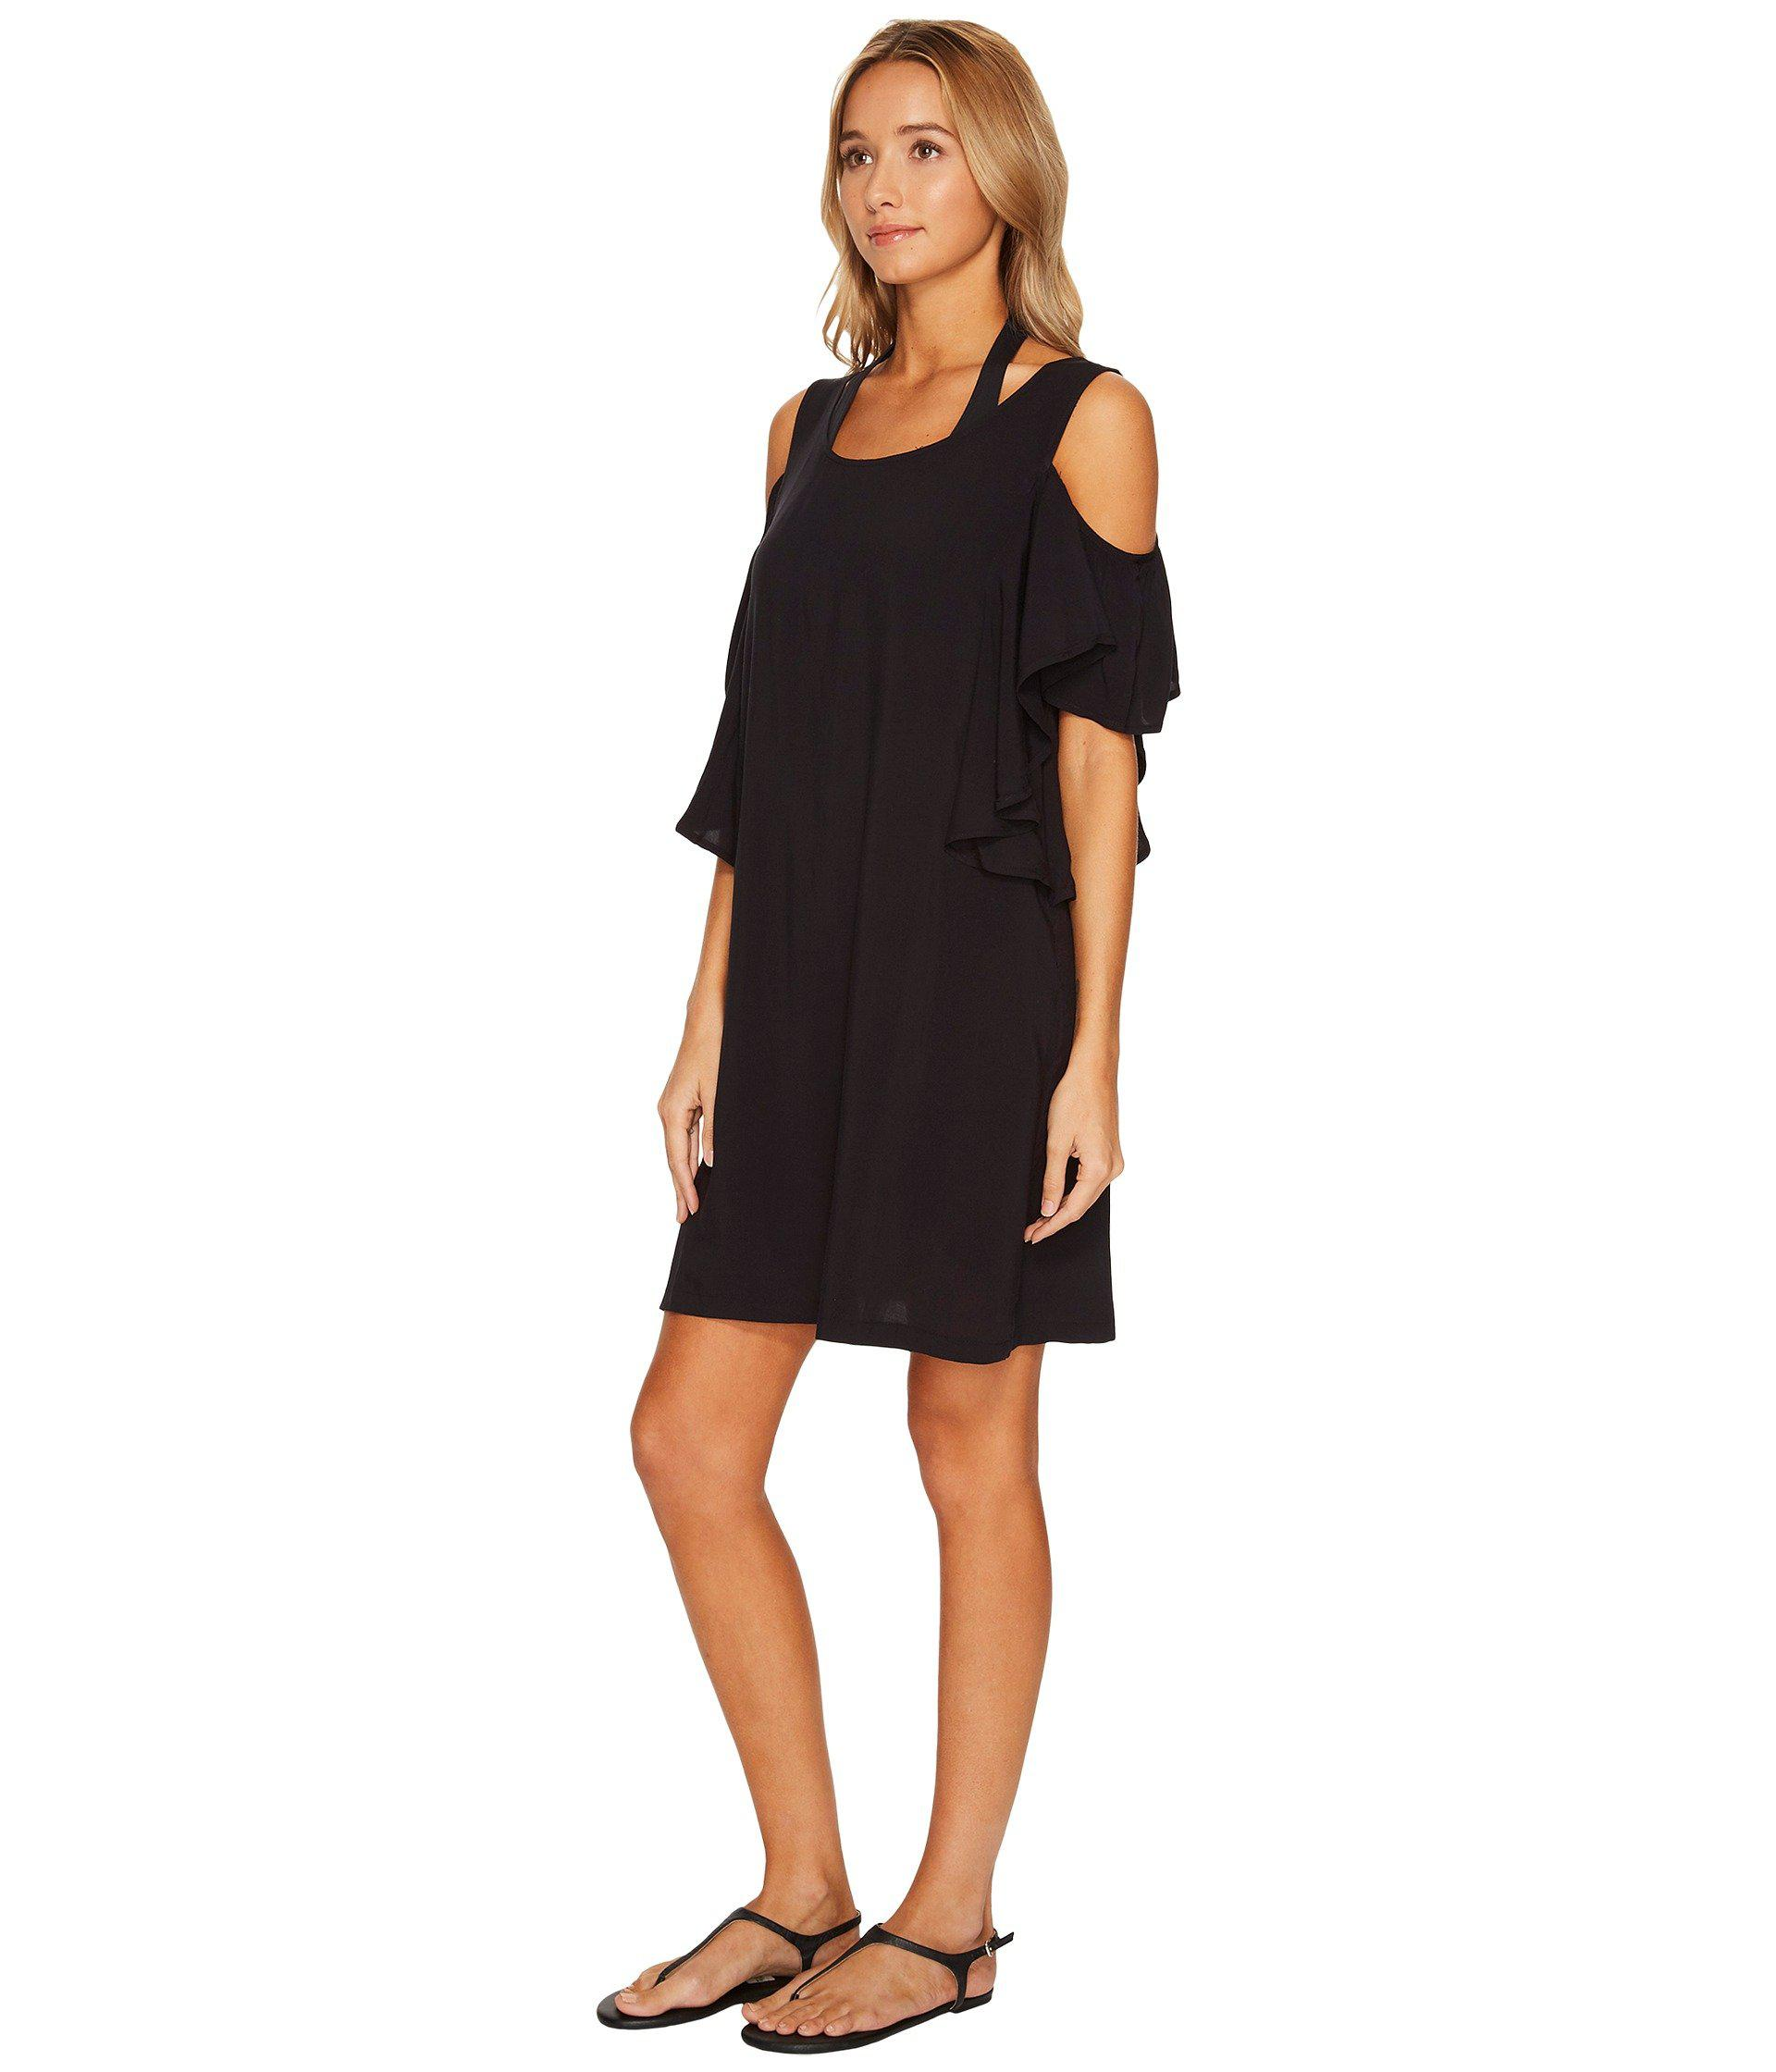 ae95e1502d Lyst - MICHAEL Michael Kors Geometric Glamour Solids Cold Shoulder Ruffle  Dress Cover-up (black) Women s Swimwear in Black